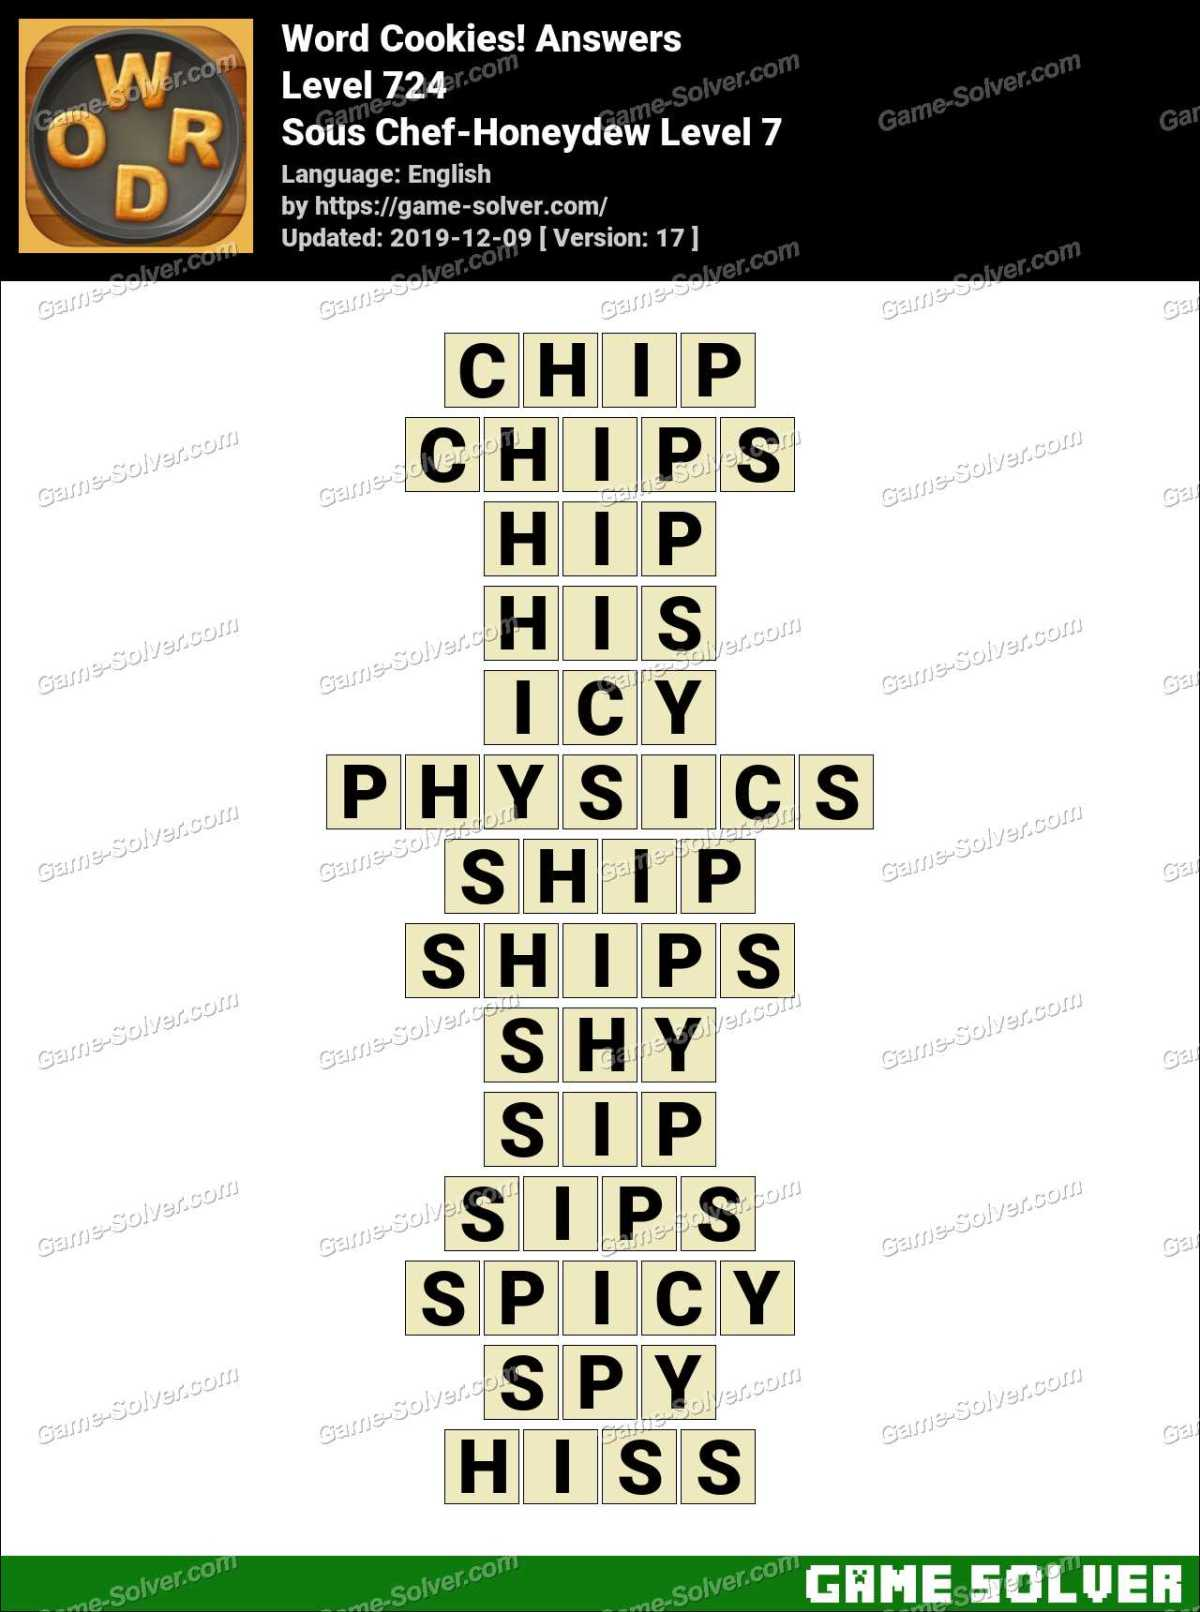 Word Cookies Sous Chef-Honeydew Level 7 Answers